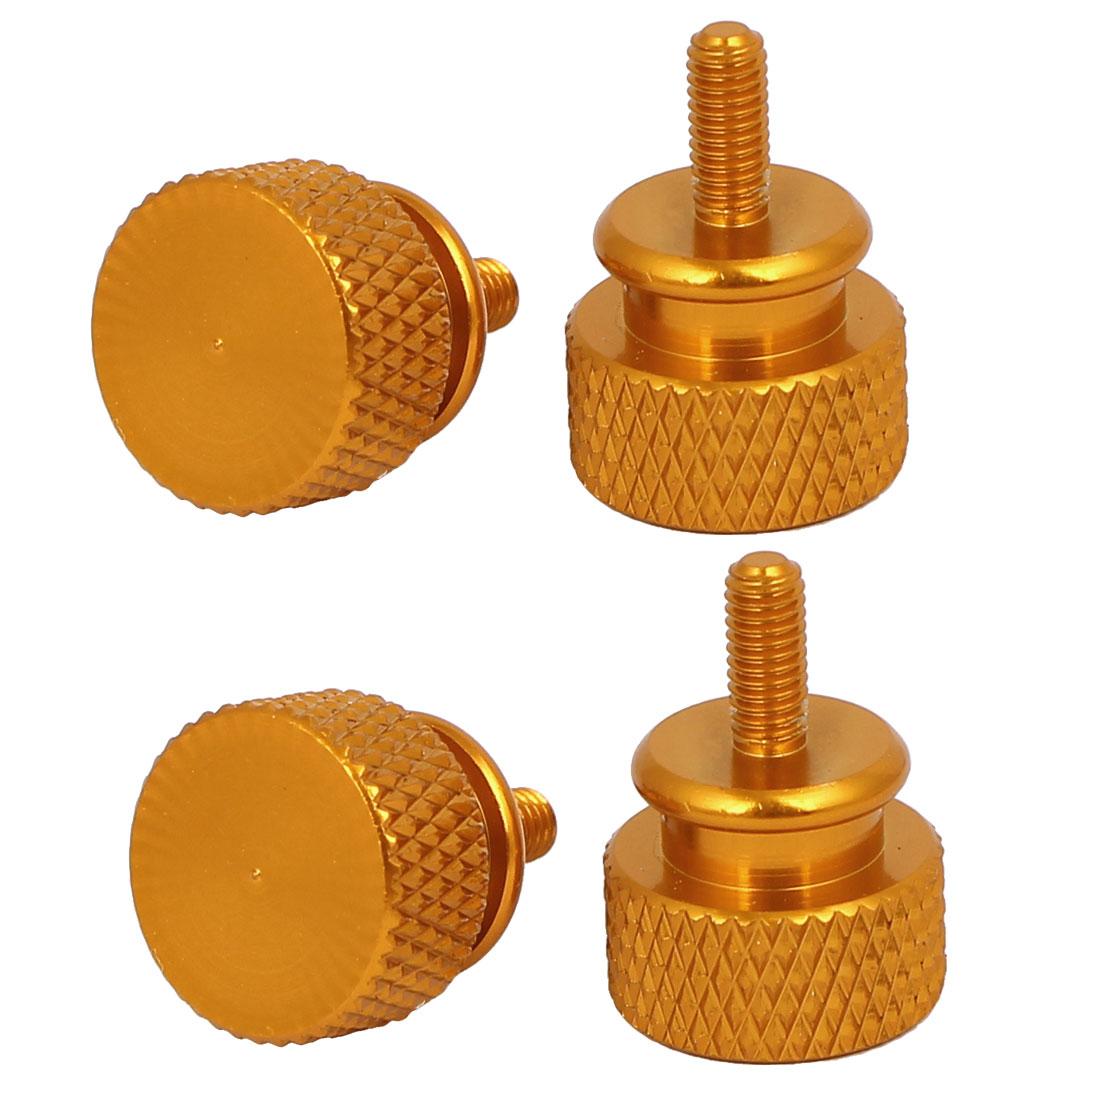 Computer PC Case Aluminum Alloy Knurled Thumb Screws Gold Tone M3x7mm 4pcs